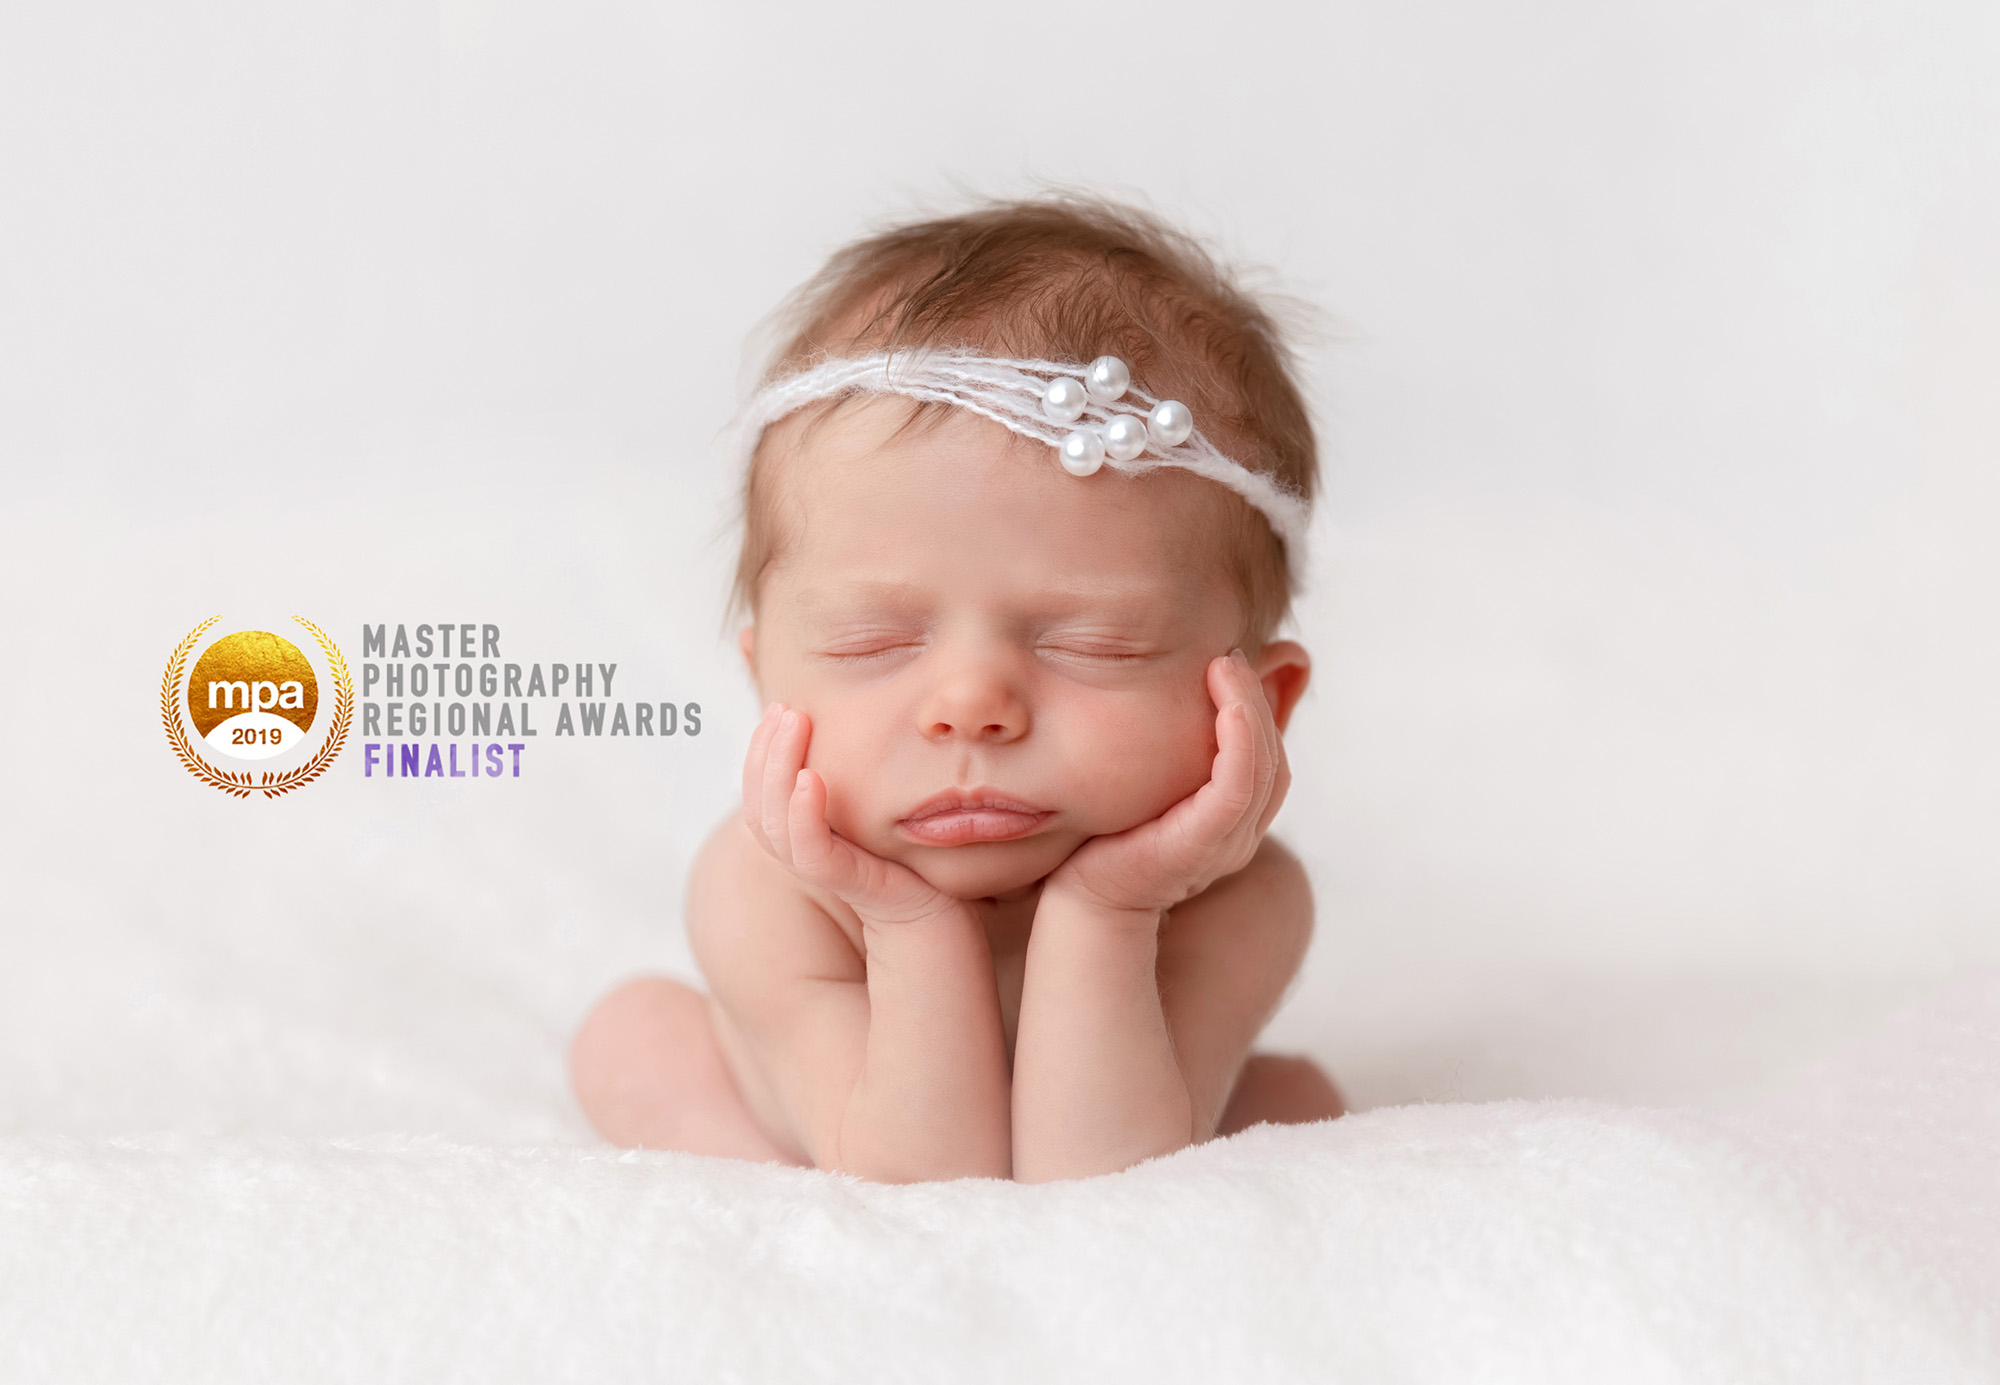 Sarah plater is an award winning newborn family and commercial photographer based in bicester